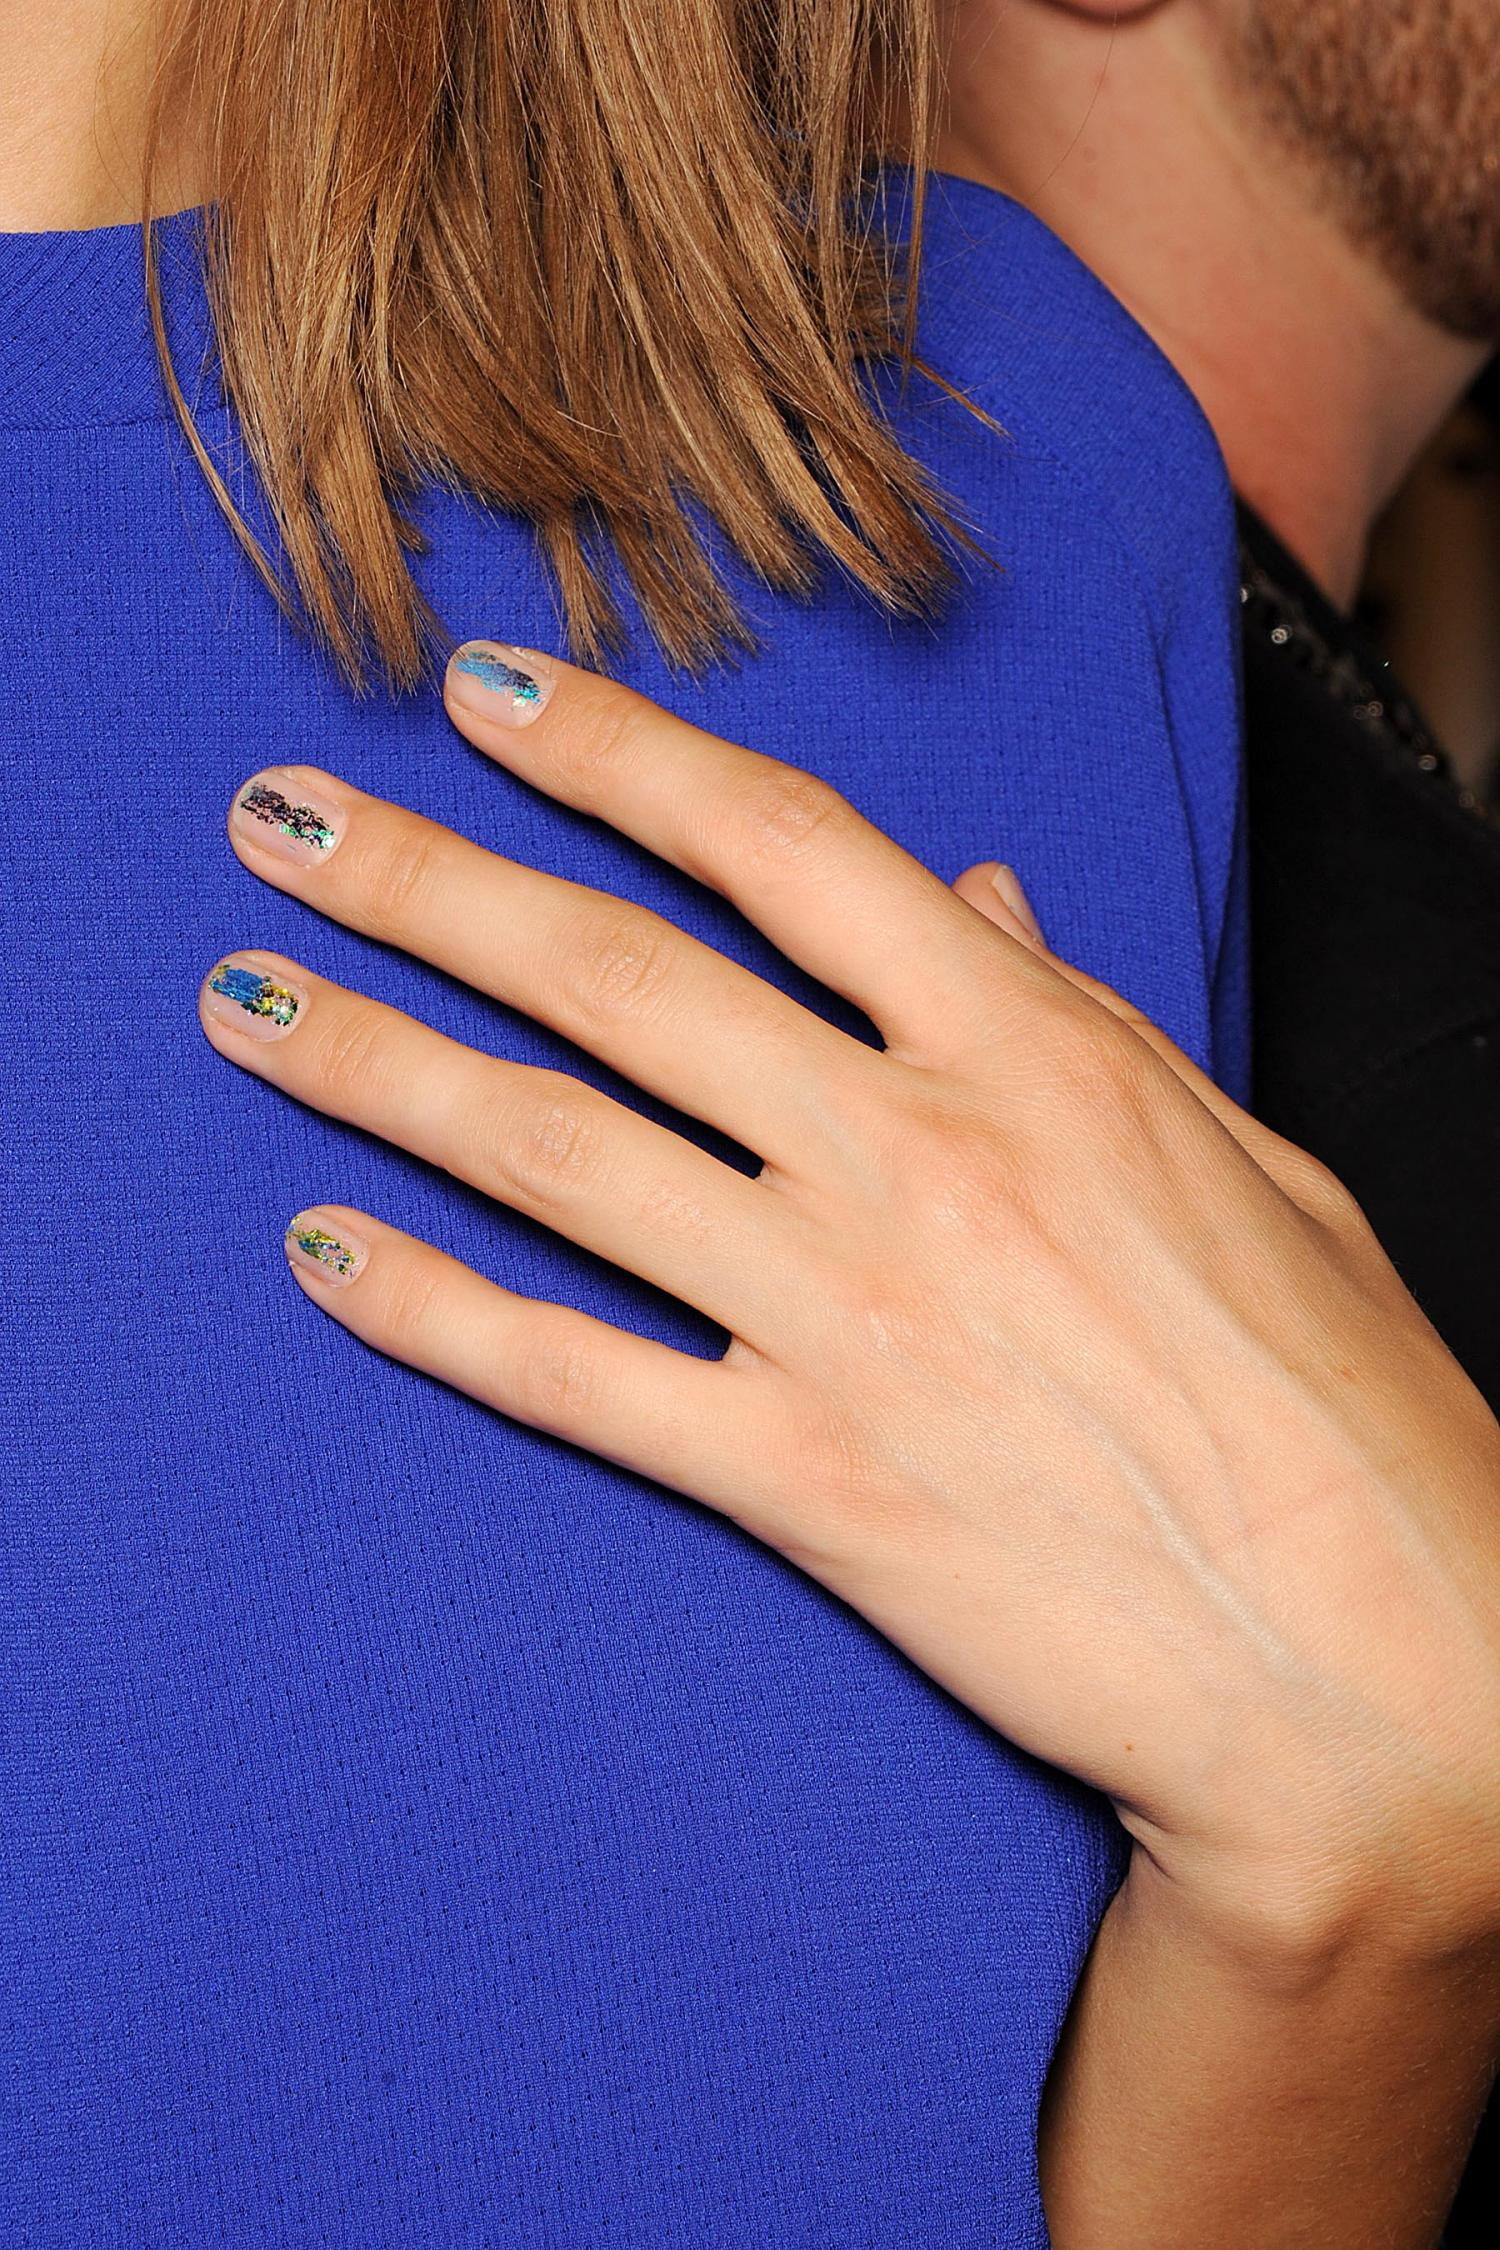 NYFW: Rave-Inspired Nails by butter LONDON on the ICB Runway